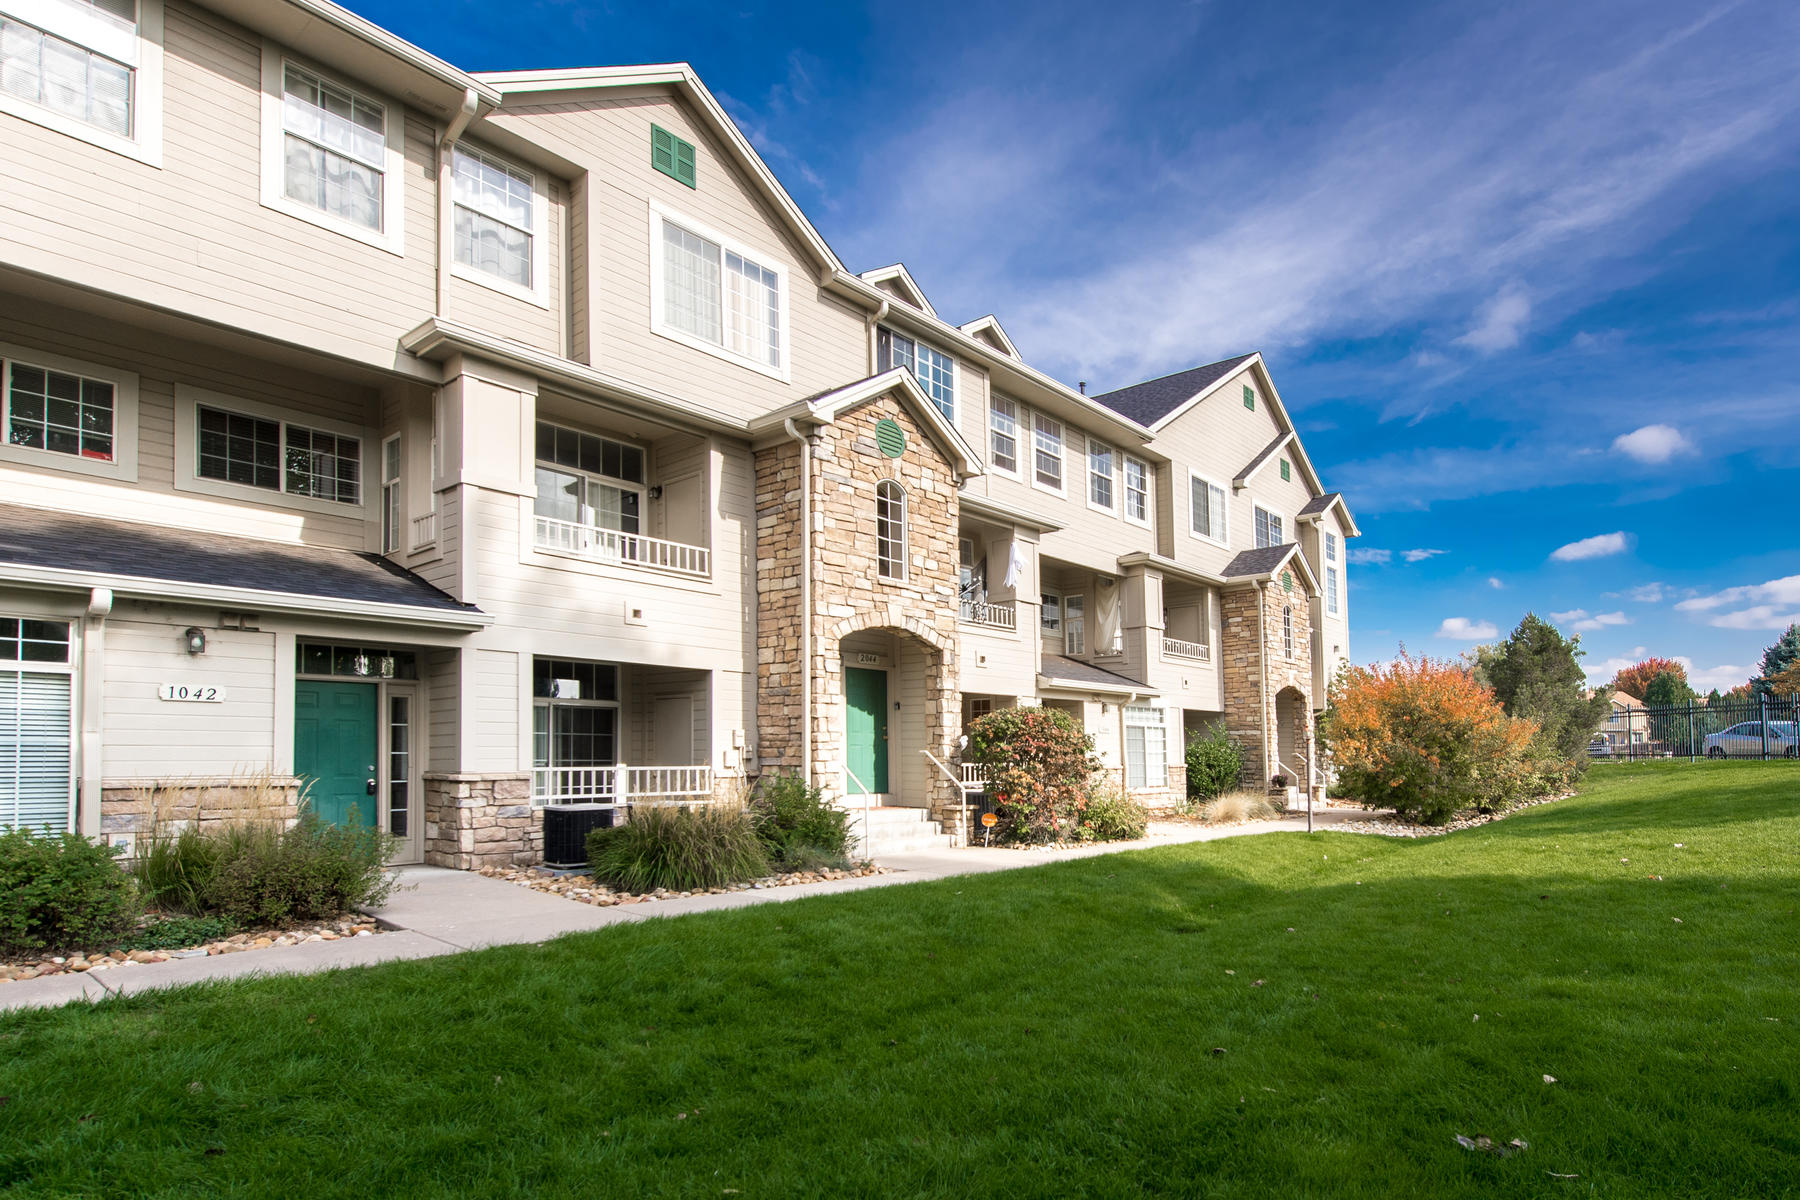 Property for Active at Lovely Copperstone Condominium 9468 E Florida Ave #1042 Denver, Colorado 80247 United States